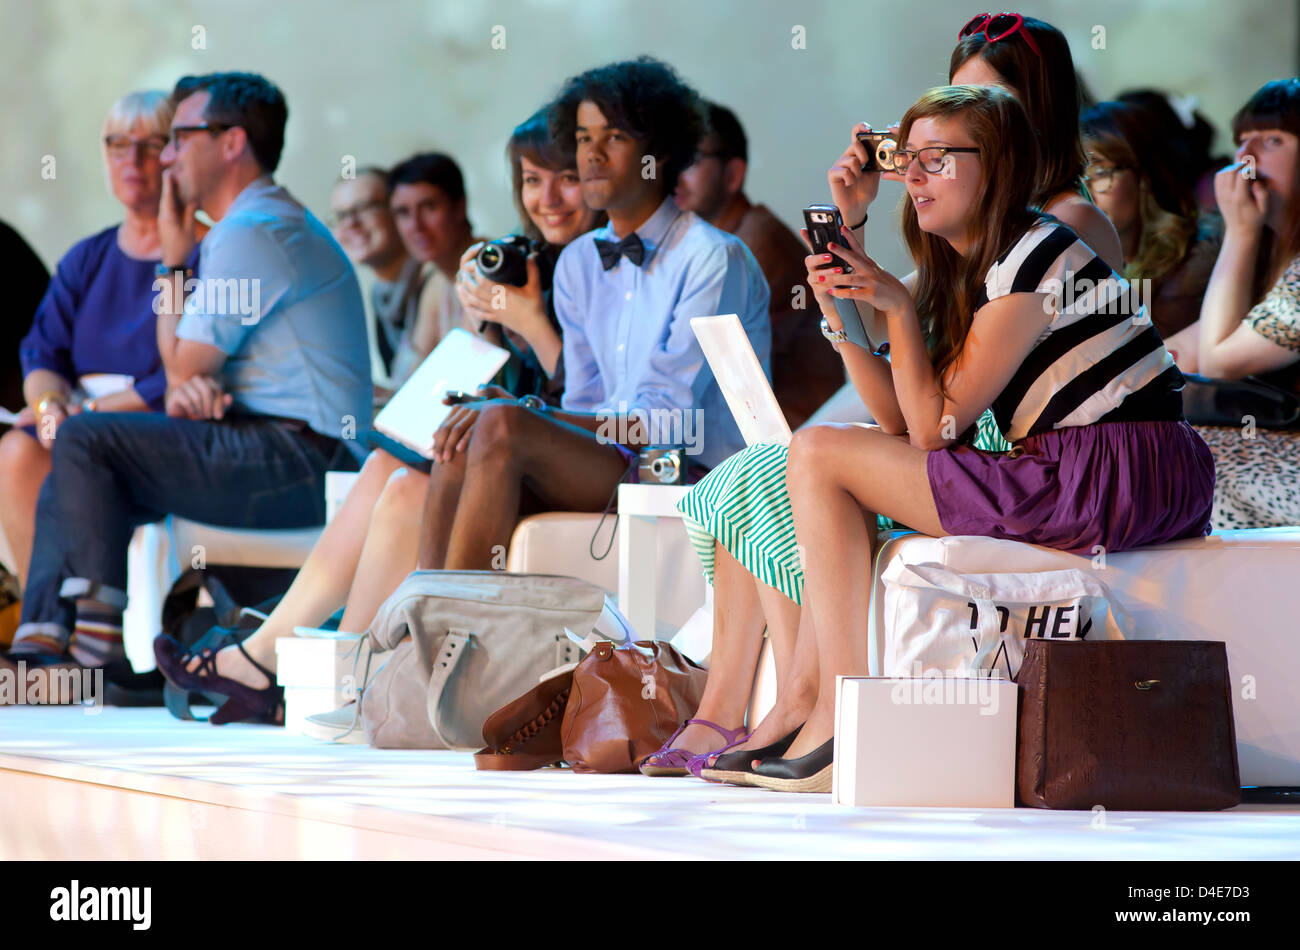 Duesseldorf, Germany, spectators on the C & A fashion show admiring the fall and winter fashion - Stock Image